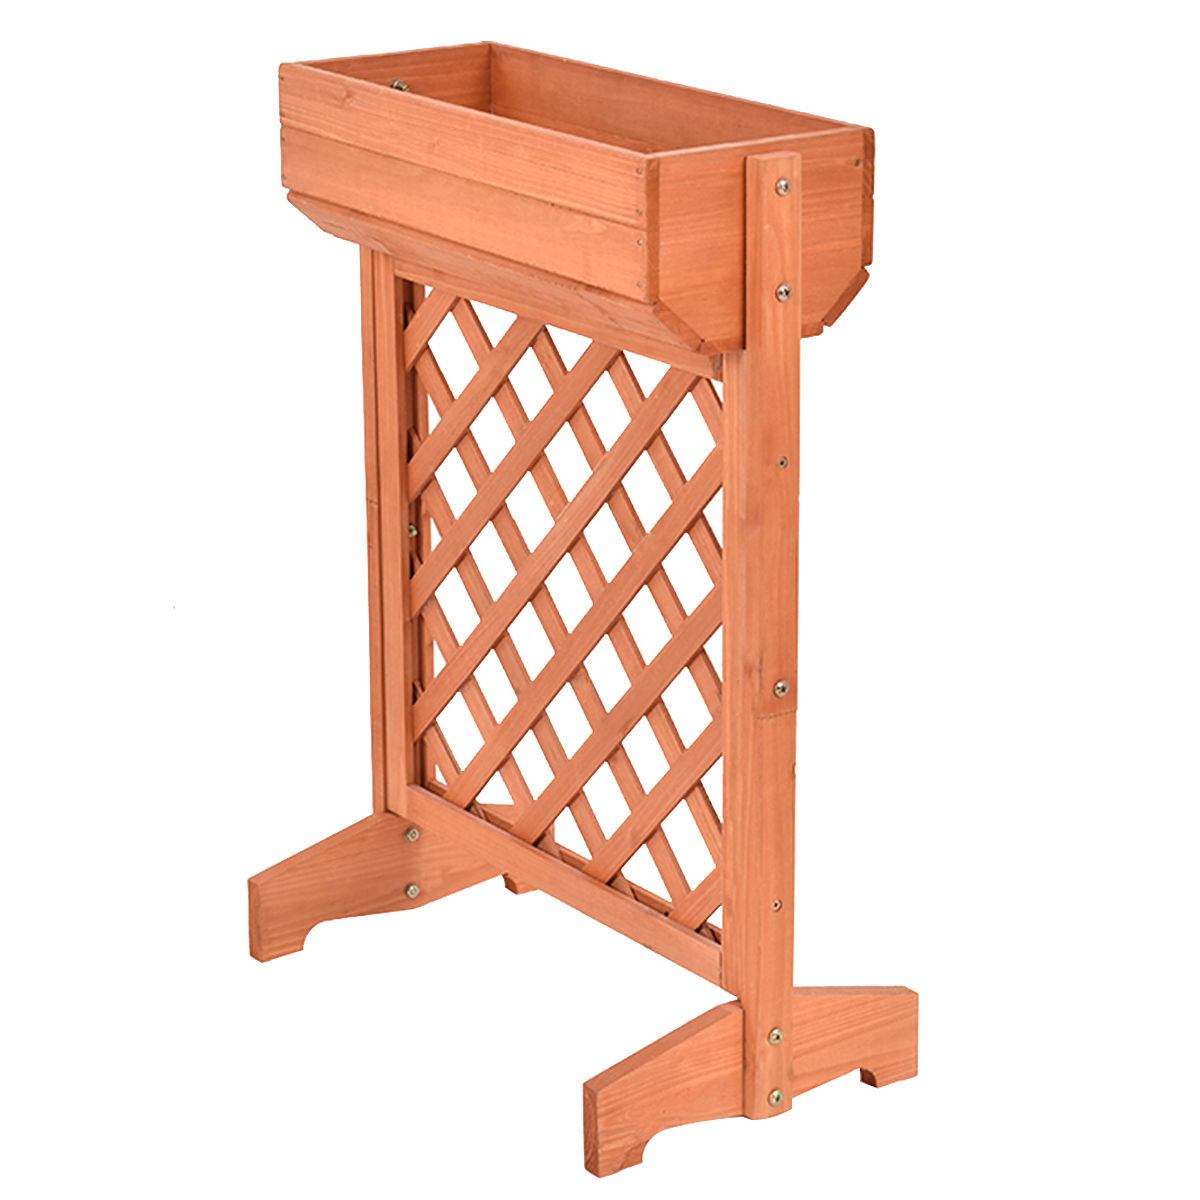 Elevated Plant Stands Garden Fir Wood Raised Bed Planter Stand